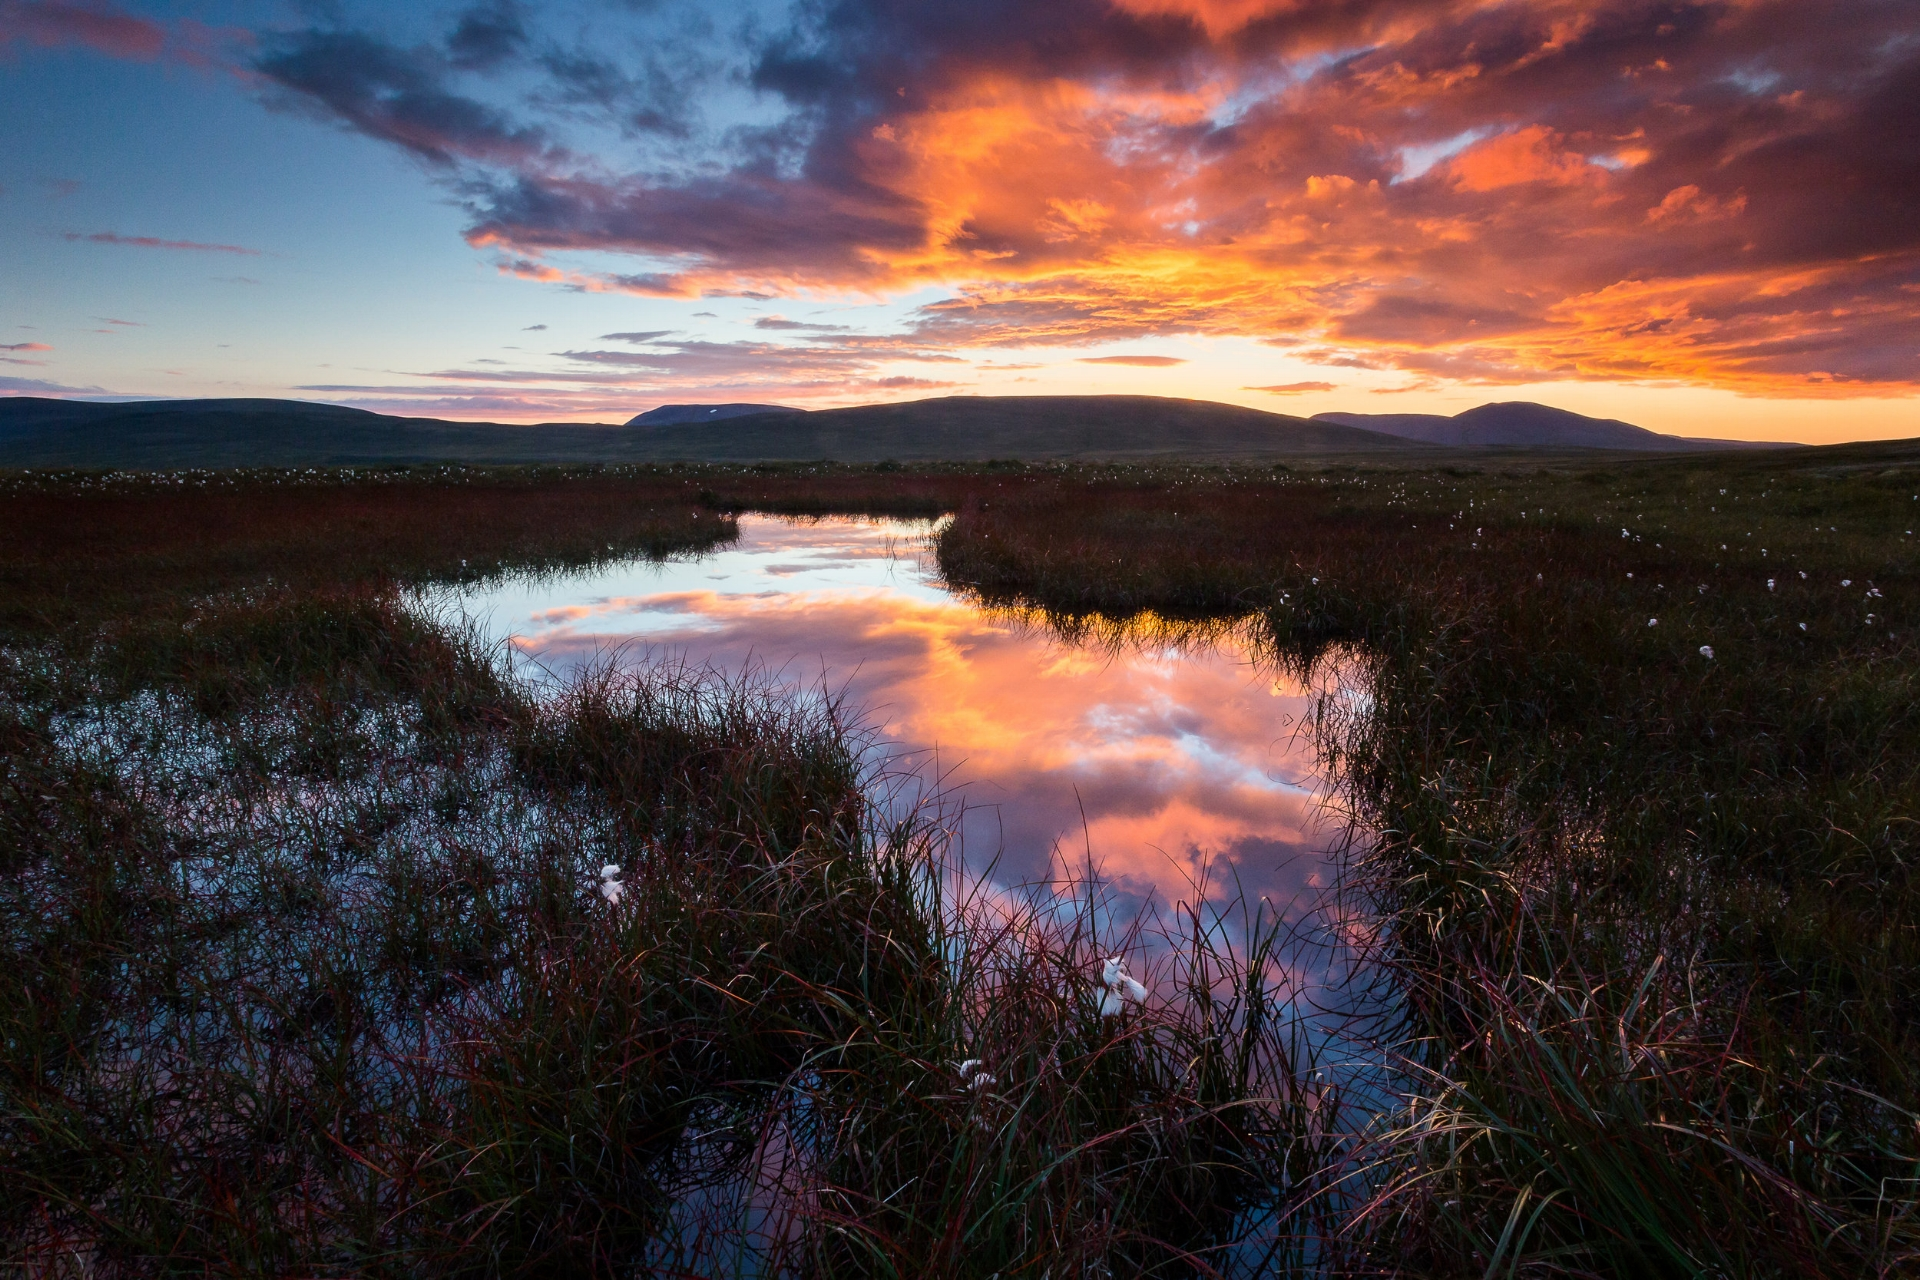 A late summer sunset in a swamp on Skagafjörður. I went in totally unprepared but the wet feet were worth the shots I was able to take. The sunset in late summer can be so fiery red that they don't look real.